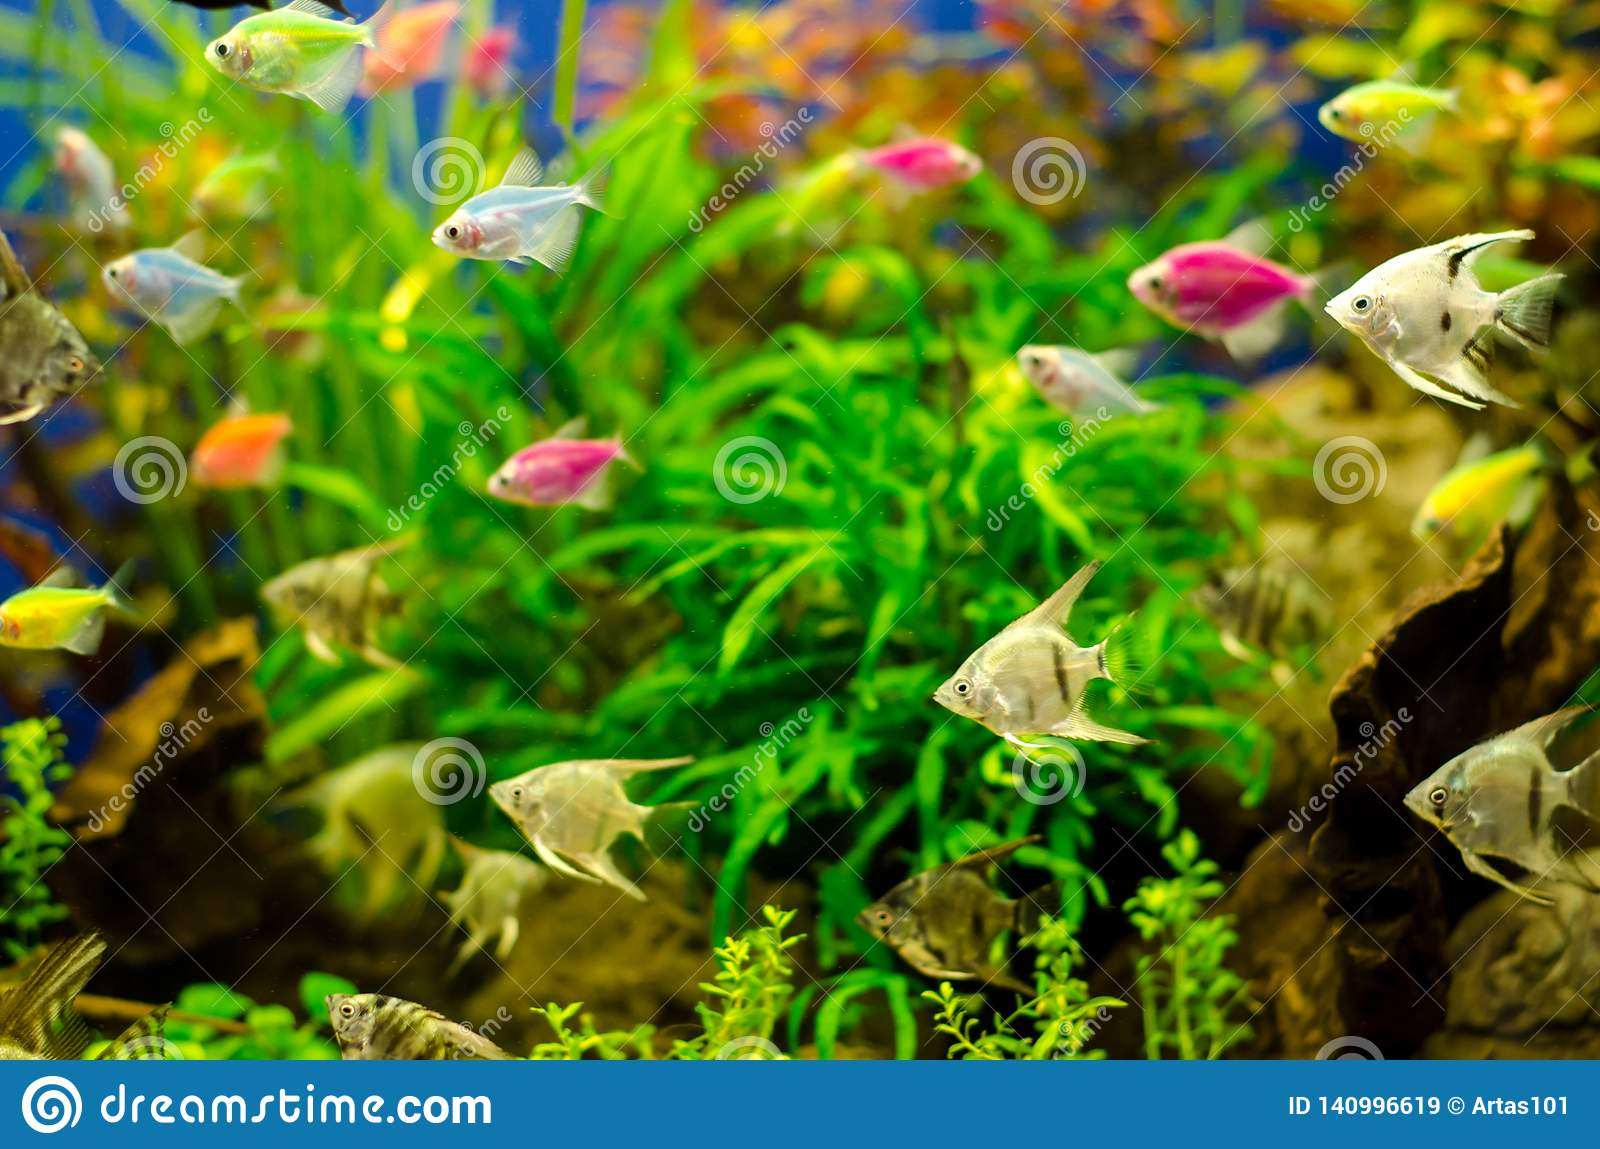 Aquarium with many colored fish